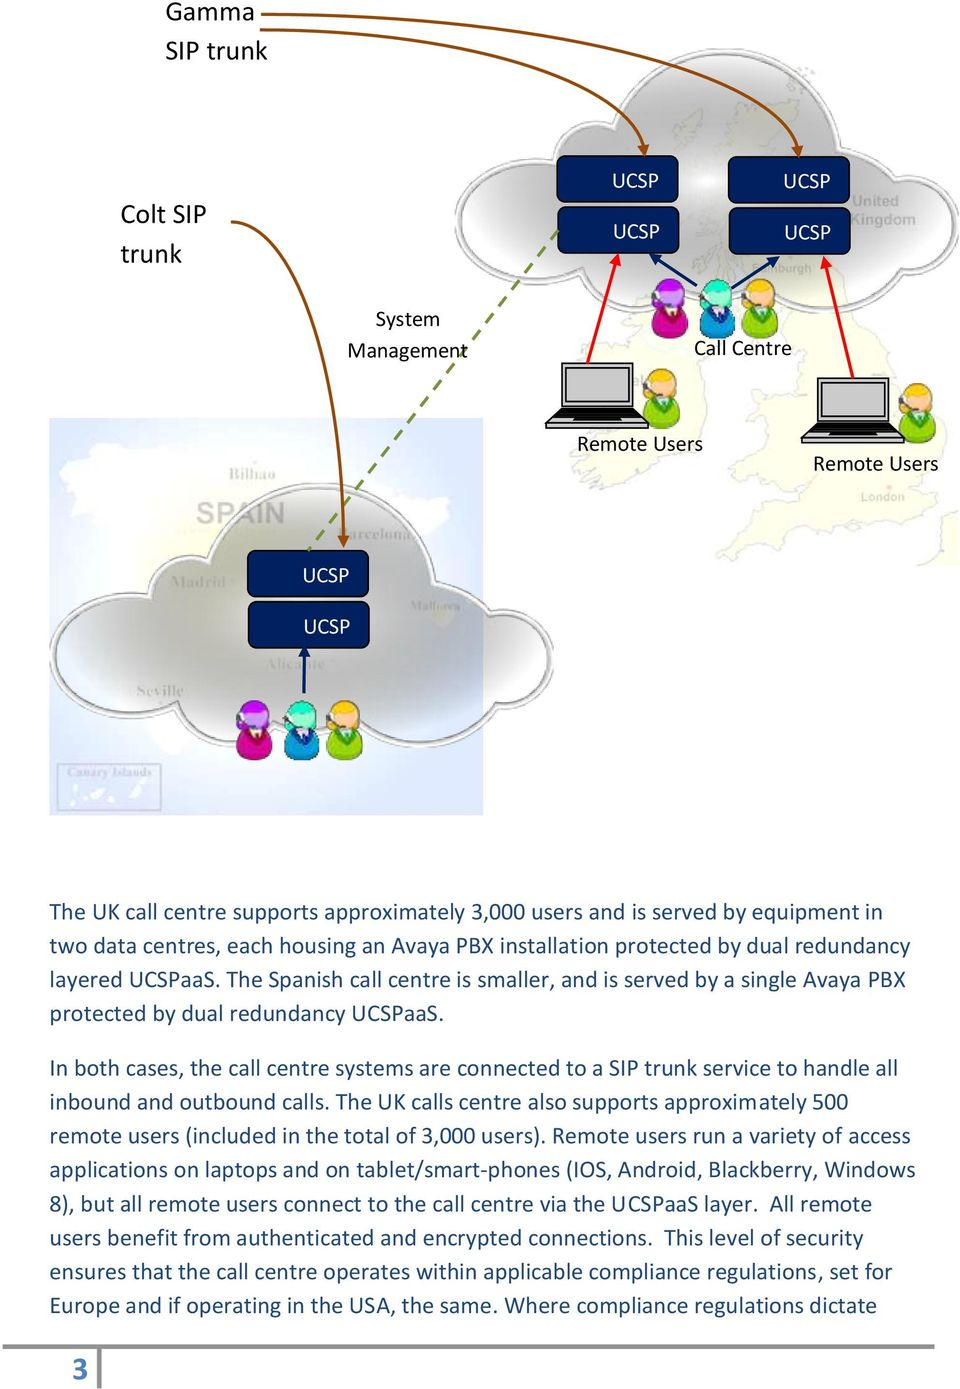 In both cases, the call centre systems are connected to a SIP trunk service to handle all inbound and outbound calls.